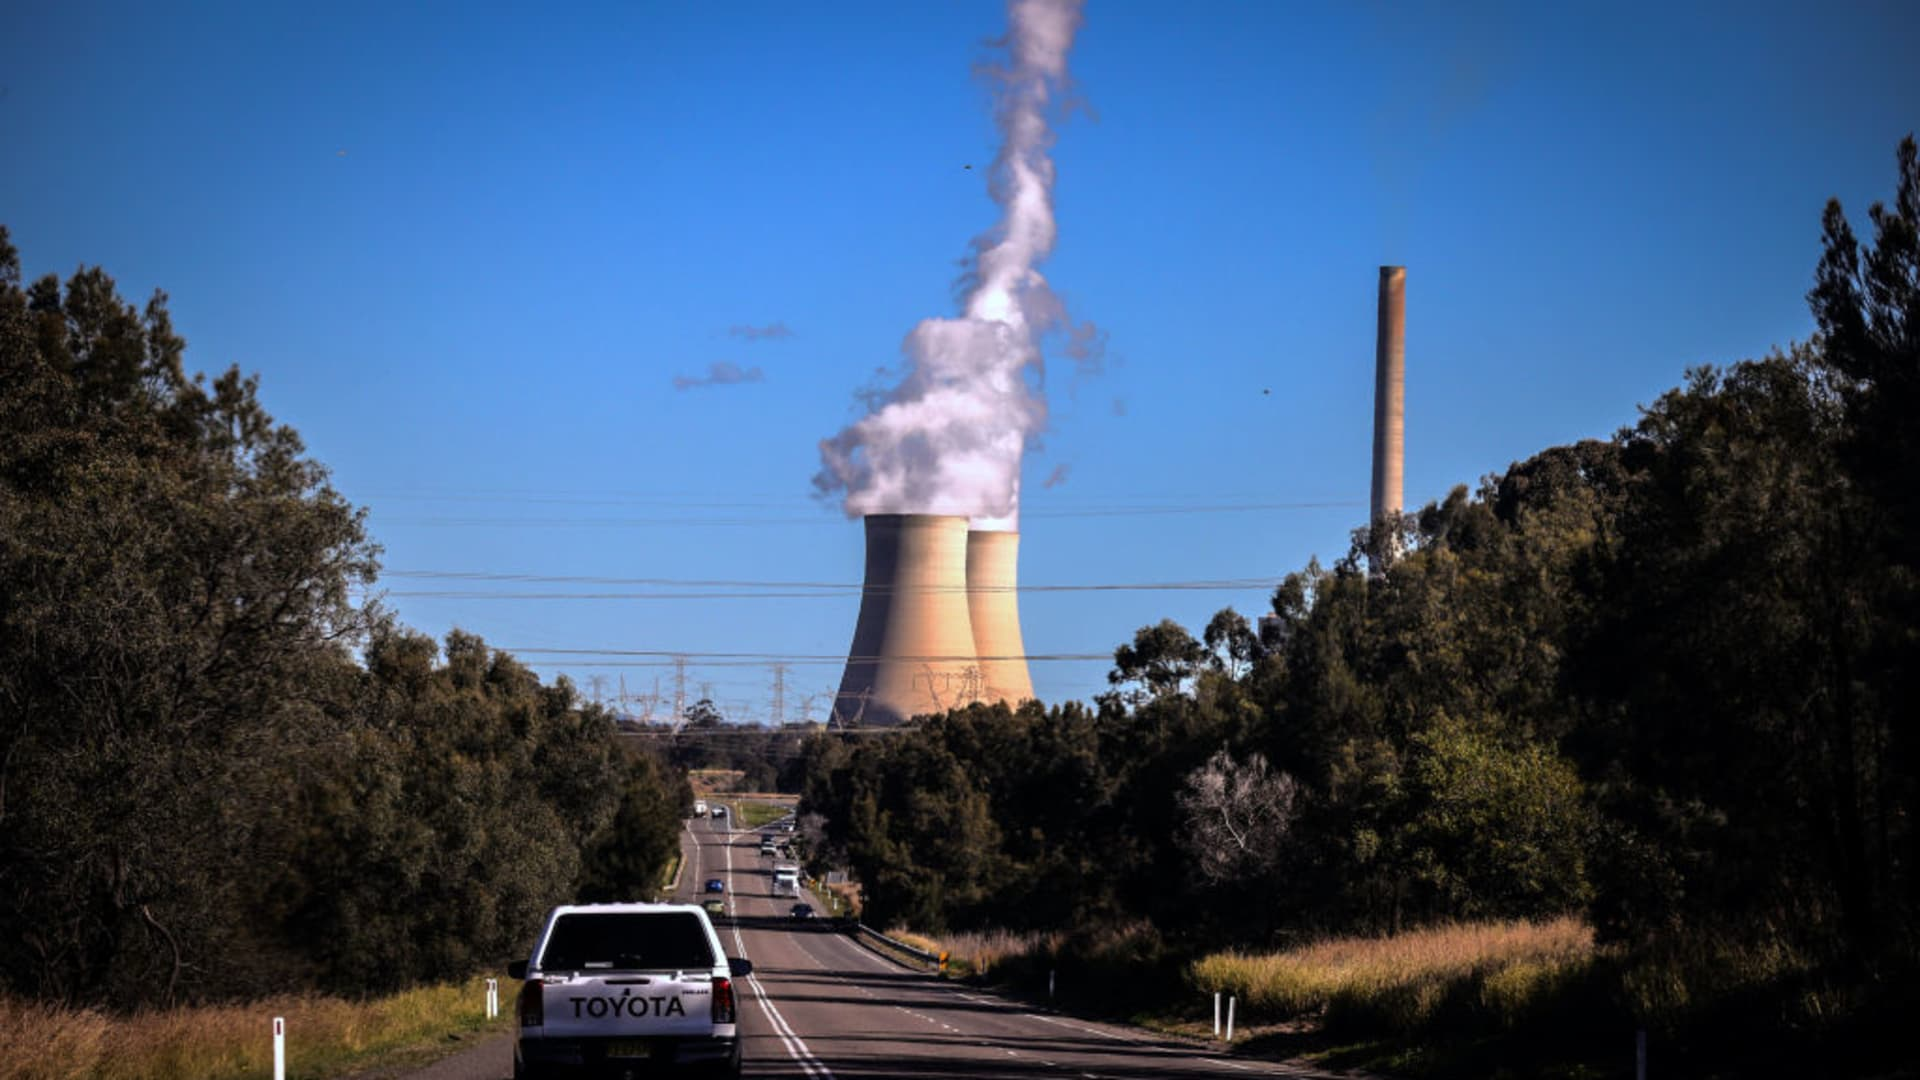 Smoke and steam rises from the Bayswater coal-powered thermal power station located near the central New South Wales town of Muswellbrook, New South Wales, in Australia.